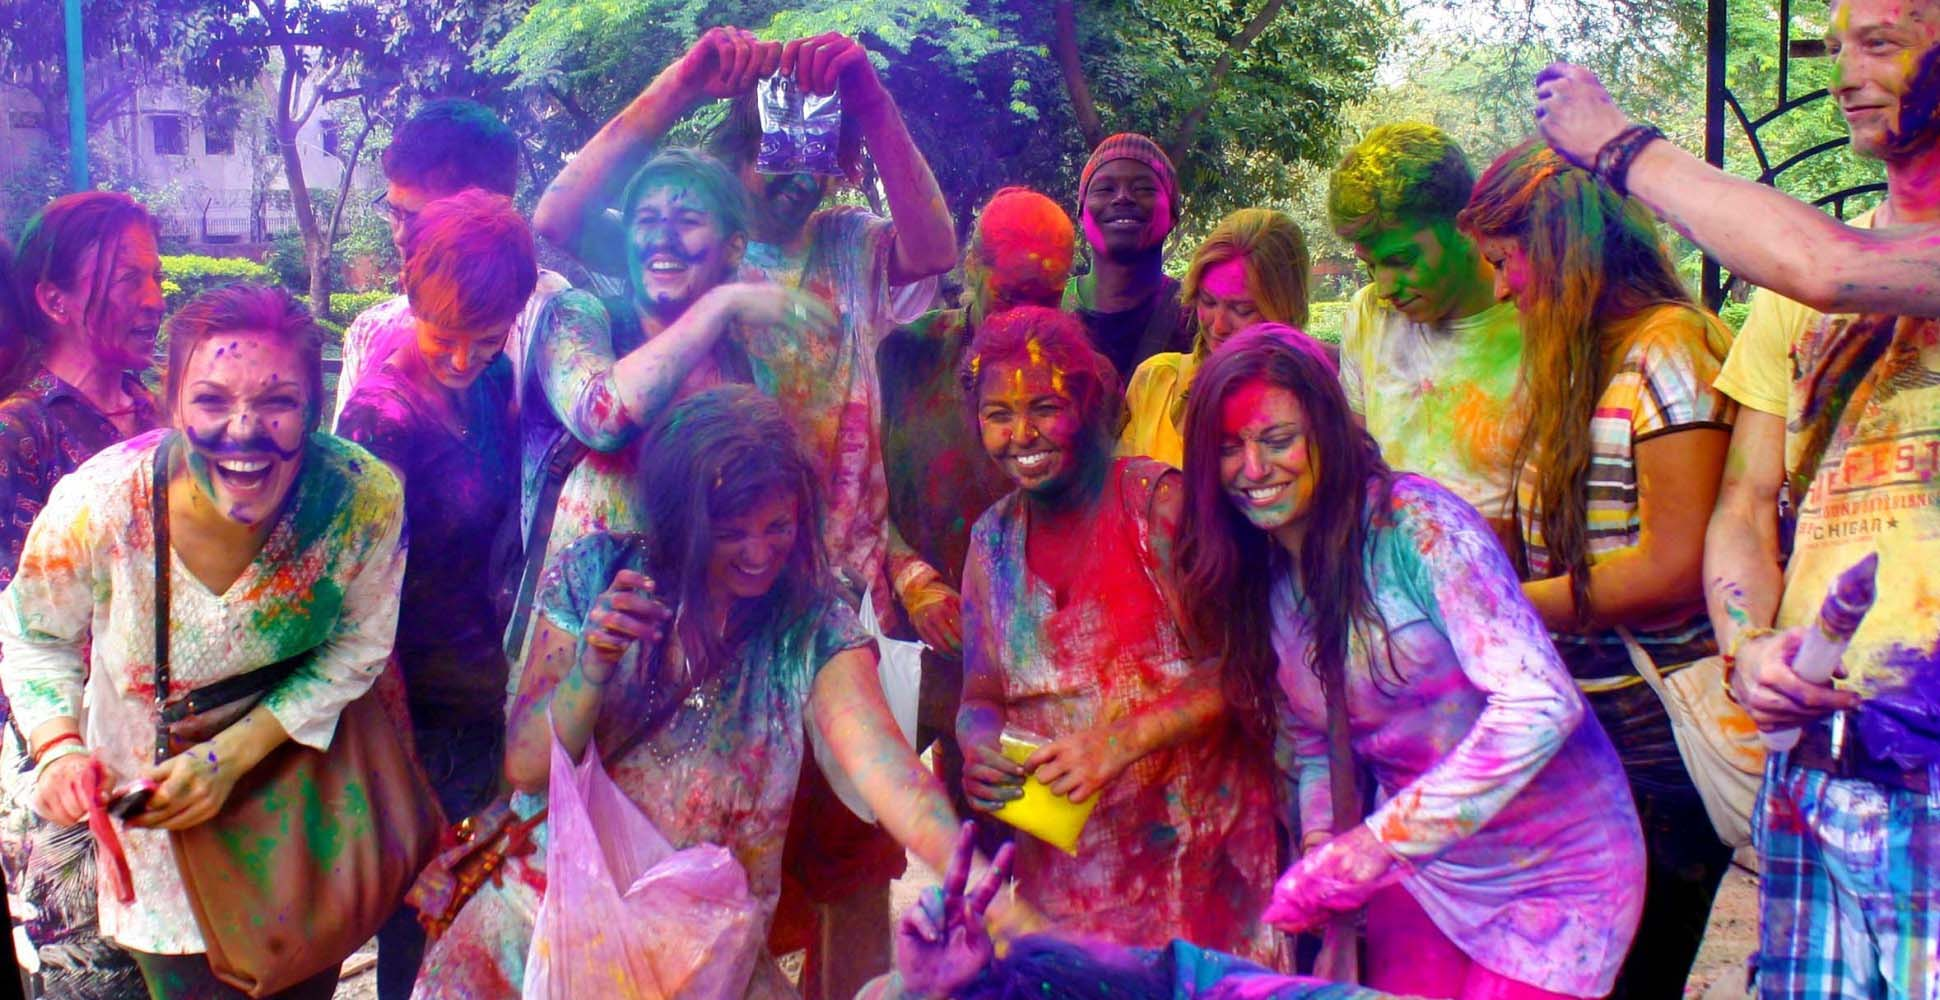 Holi Festival Latest Pictures Wallpapers Ultra HD 4K 1940x1000